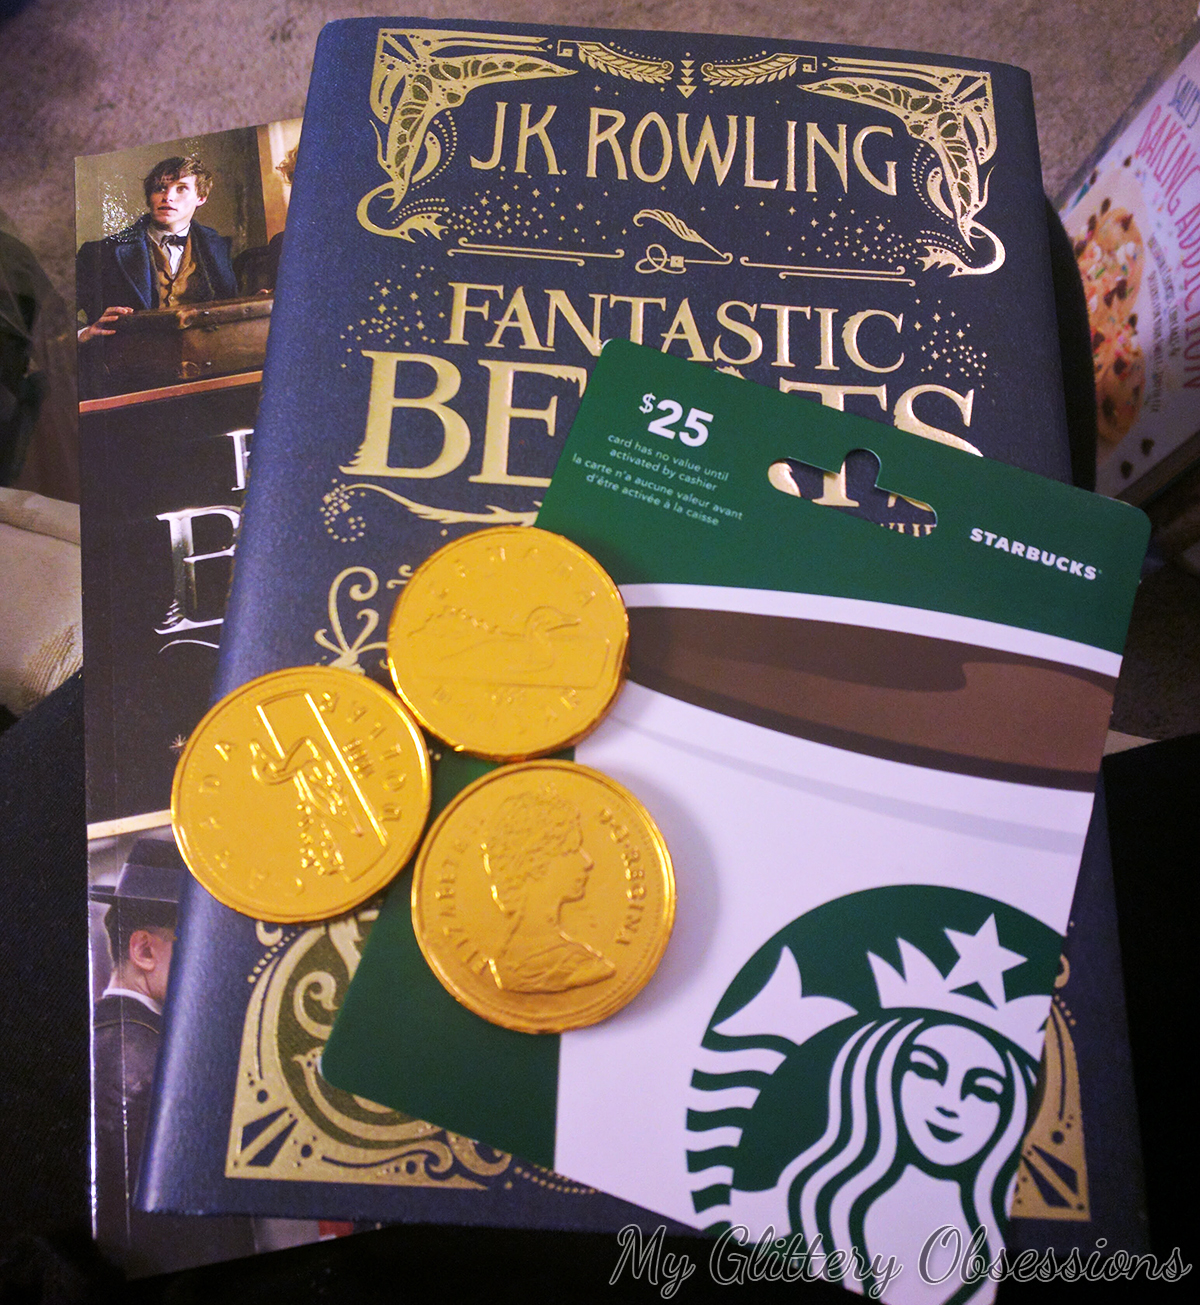 Starbucks and Fantastic Beasts